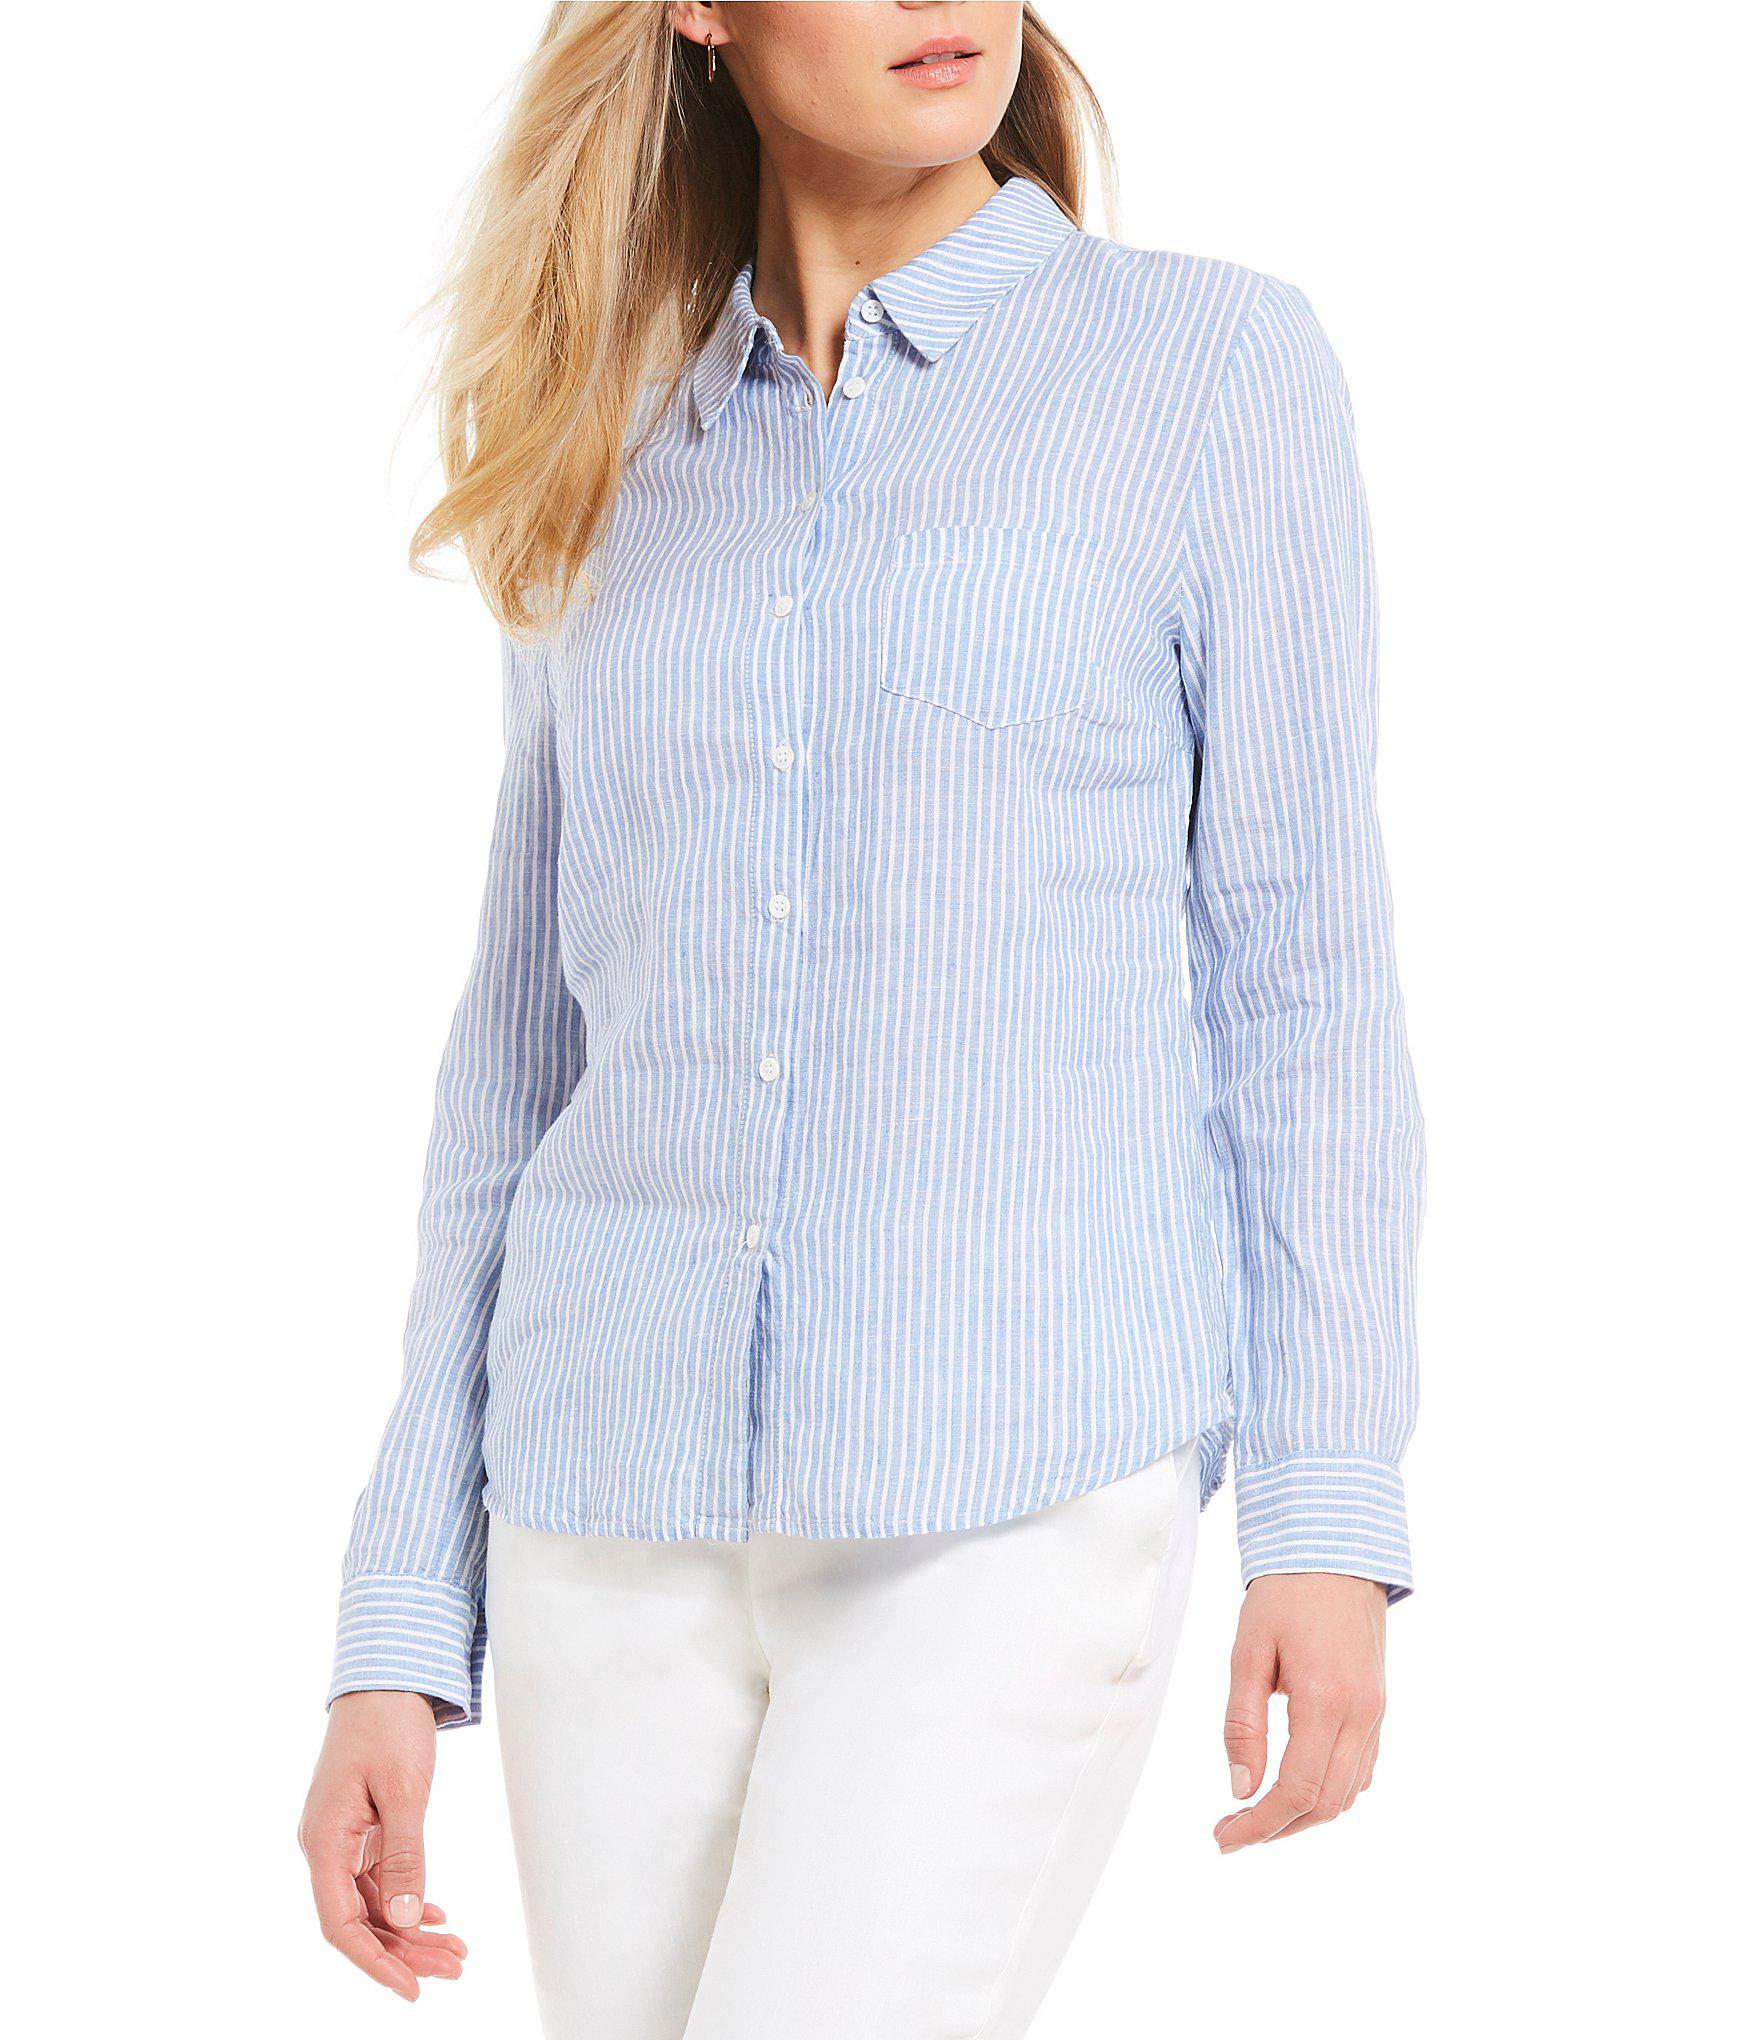 e4aaabf0a877bd Lyst - Antonio Melani Blair Pin Striped Button Front Linen Blouse in ...